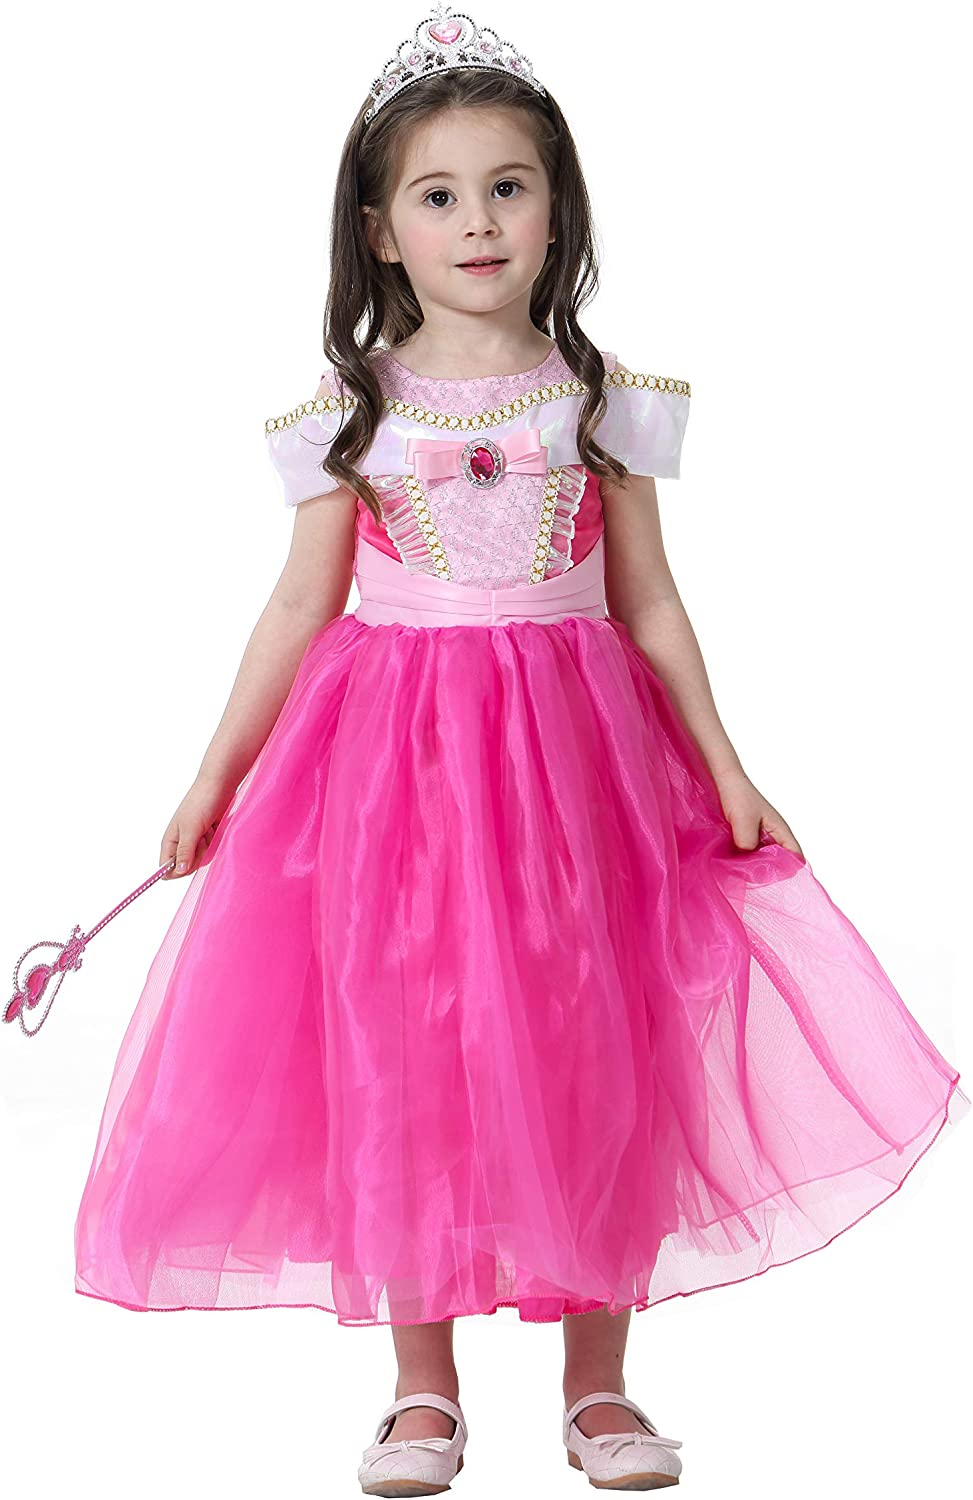 Best Home /& Baby Girls Sleeping Beauty Princess Dress Altezza